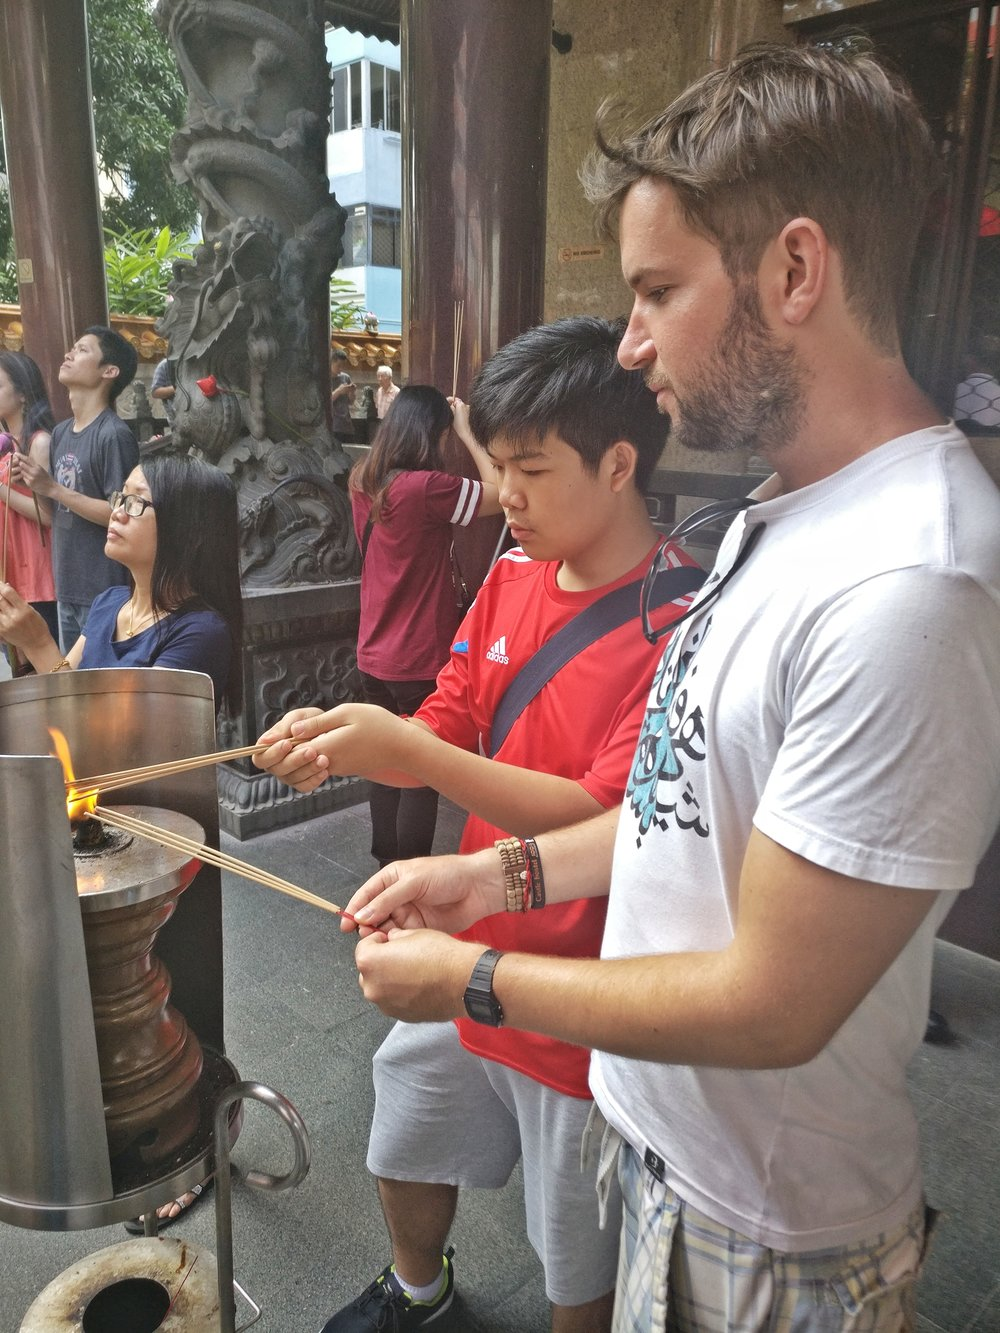 Incense at the Chinese temple